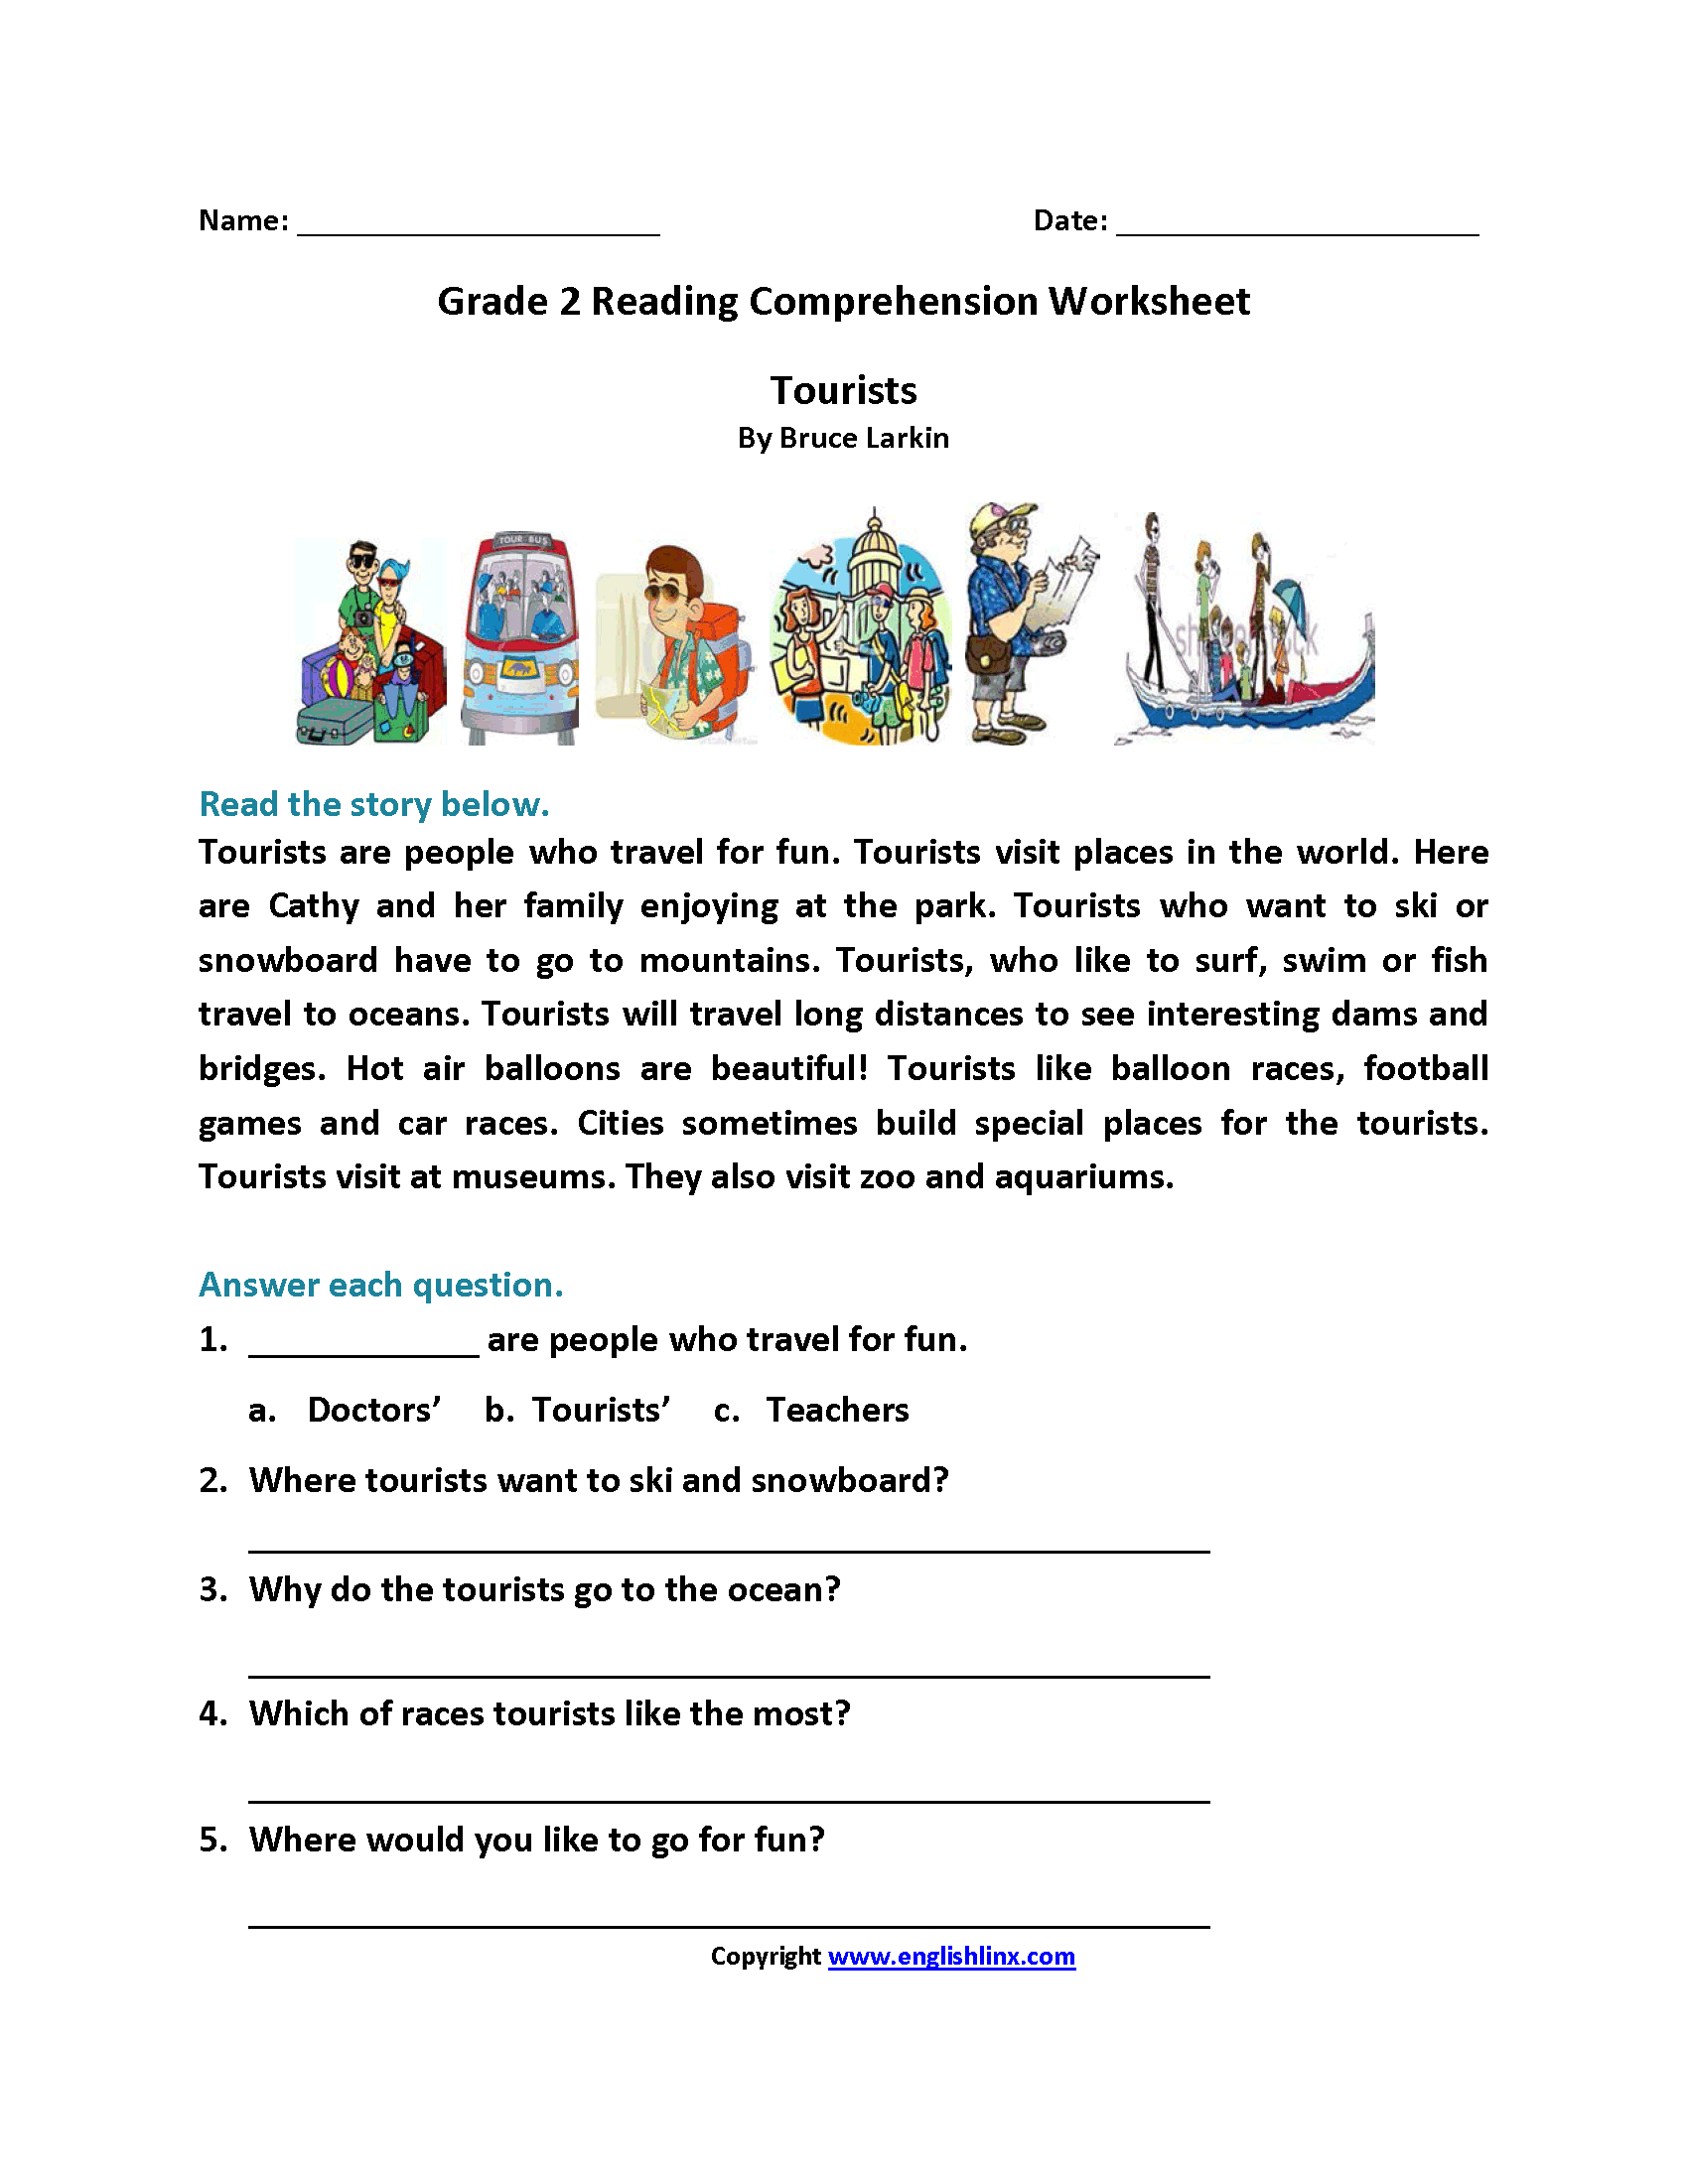 - Free Reading Comprehension Worksheet Grade 2 Printable